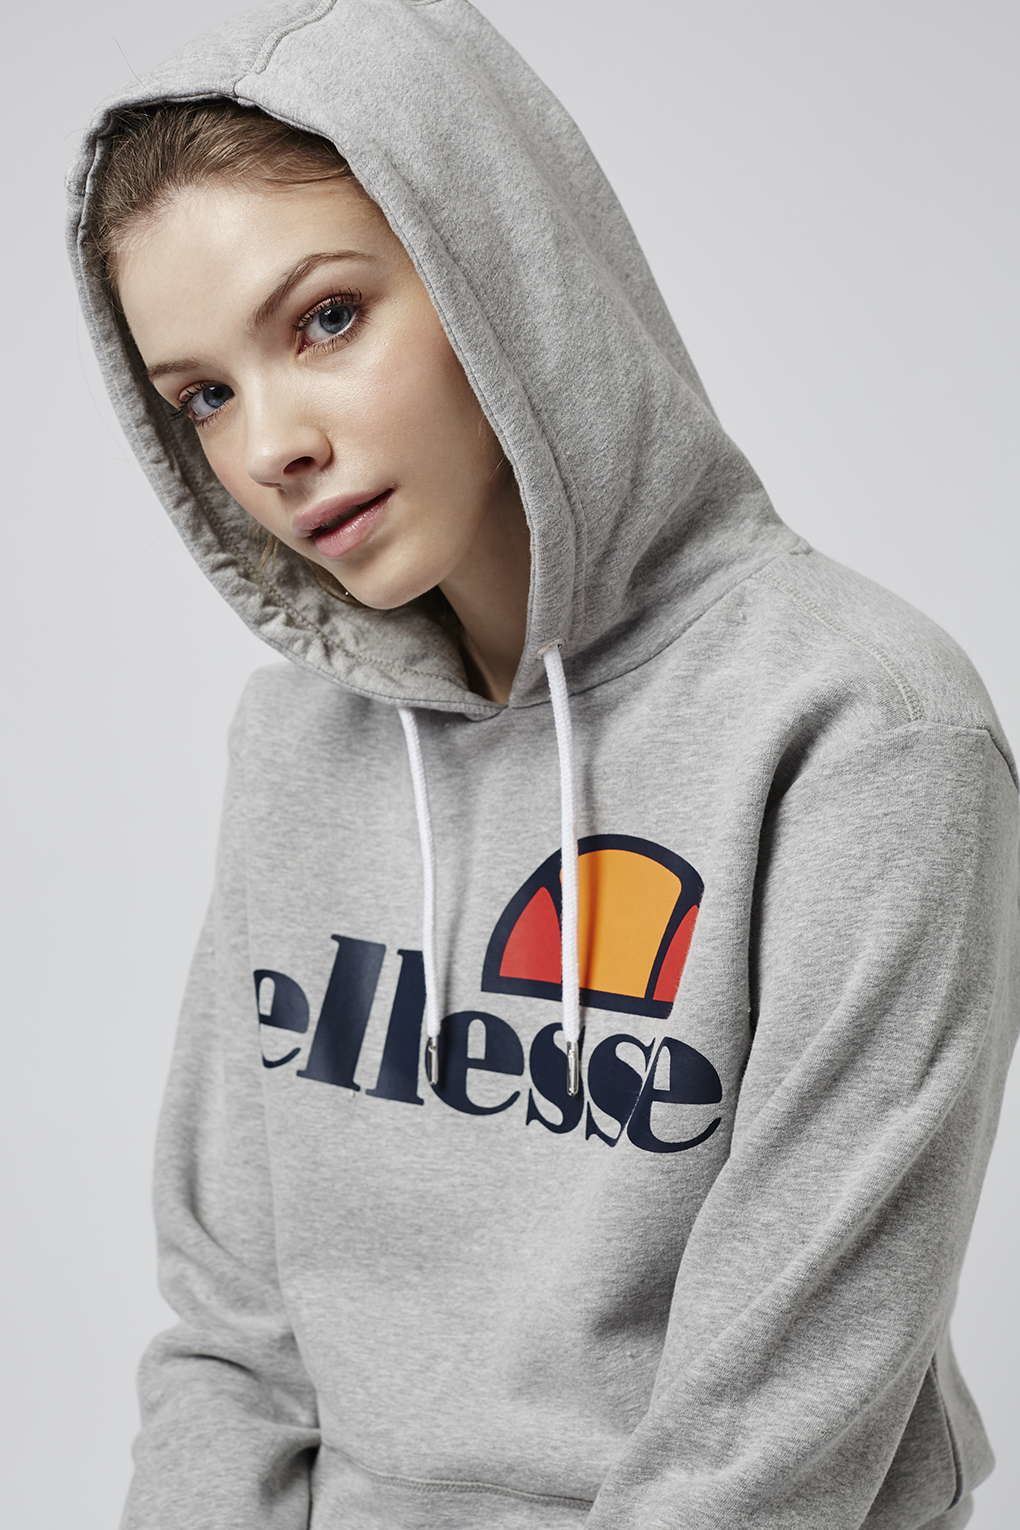 8f86d0fc4e TOPSHOP Gray Oversized Hoodie By Ellesse